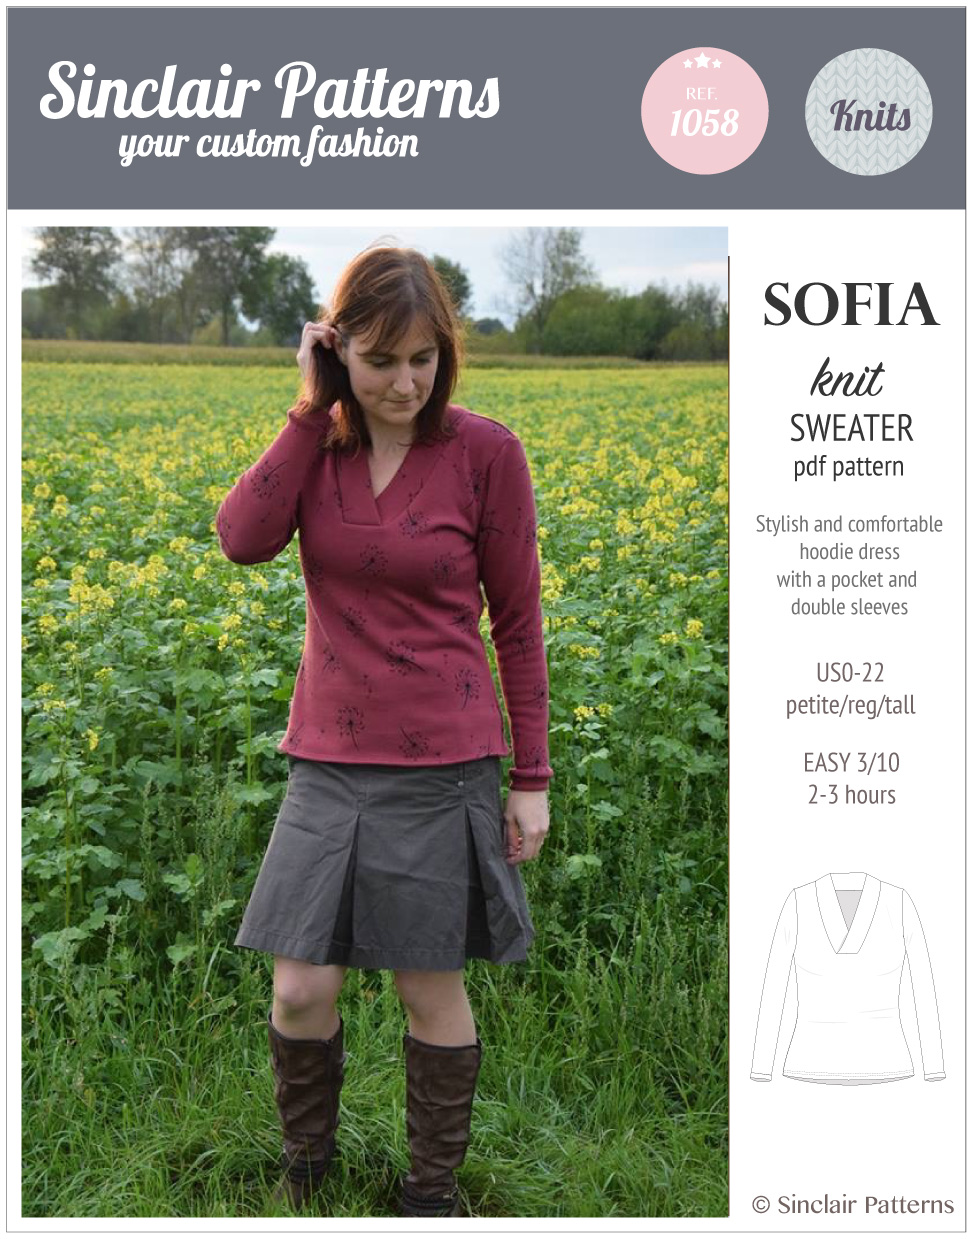 Sinclair patterns 1058 Sofia shawl collar sweater pdf sewing pattern